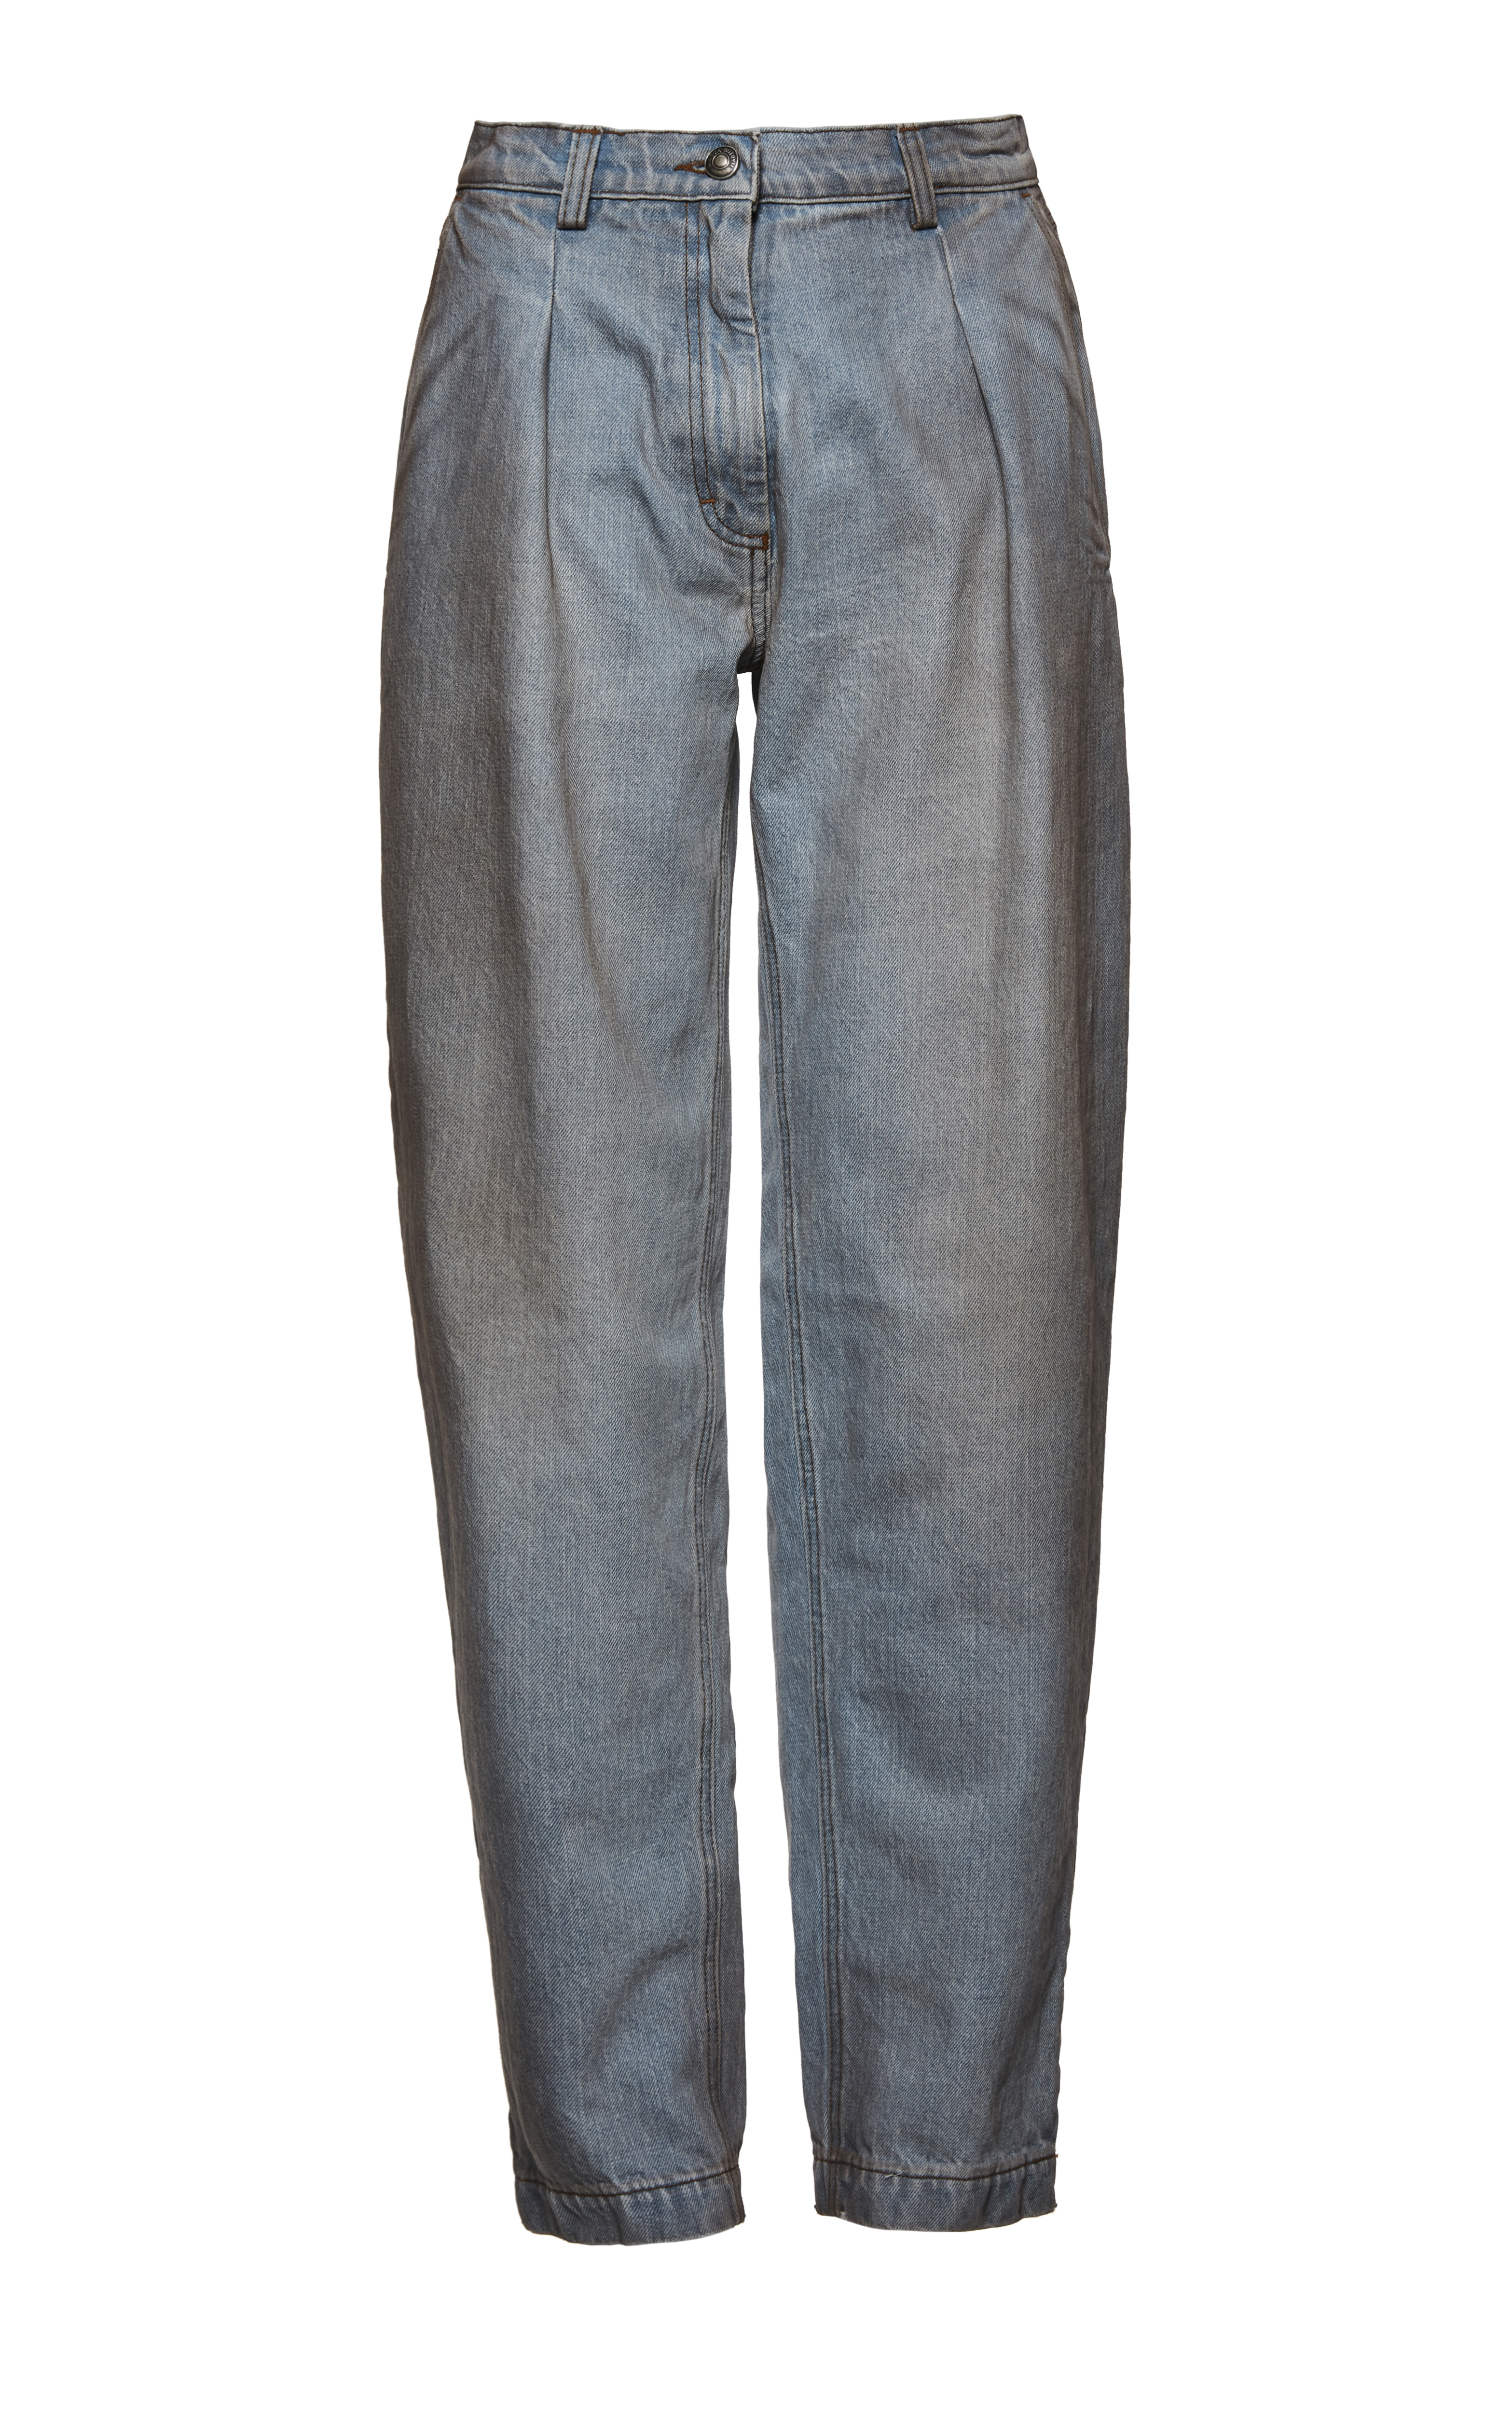 Magda Butrm's Huntsville light blue jeans